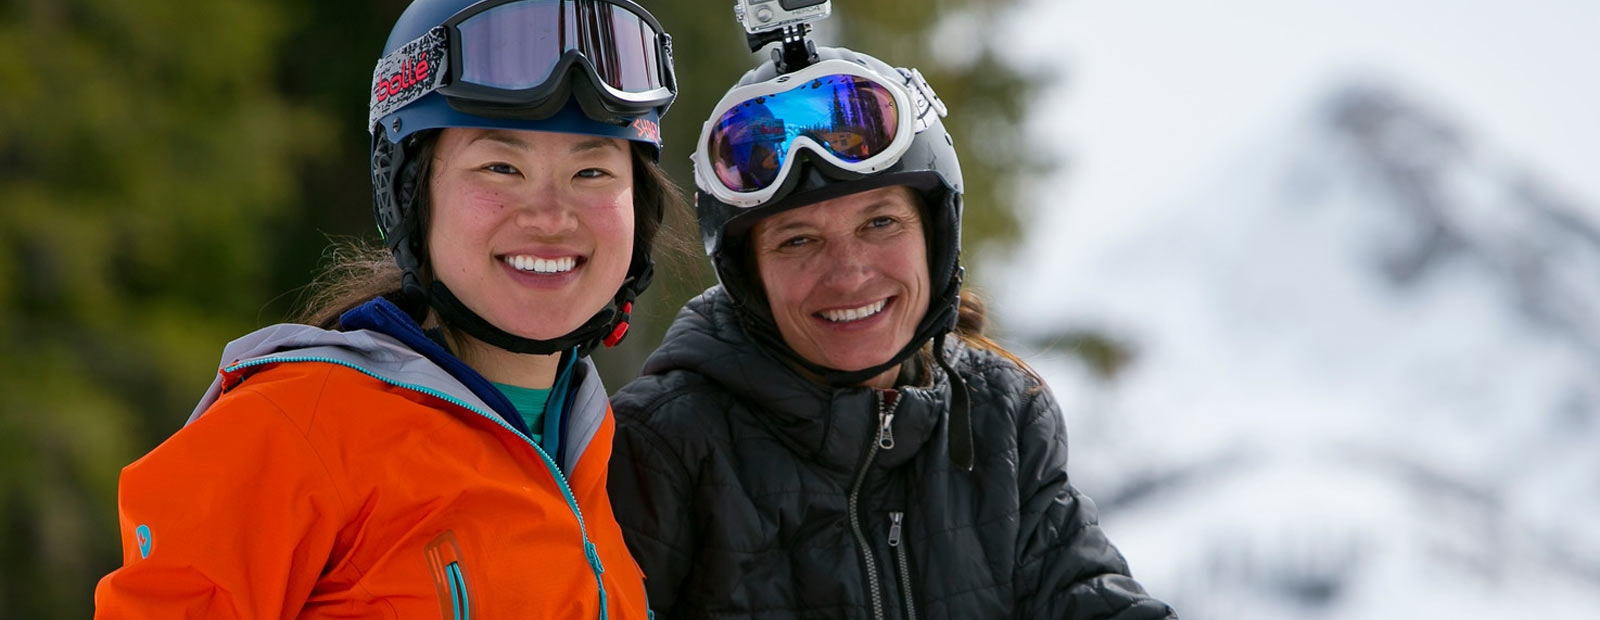 Two women skiers smiling